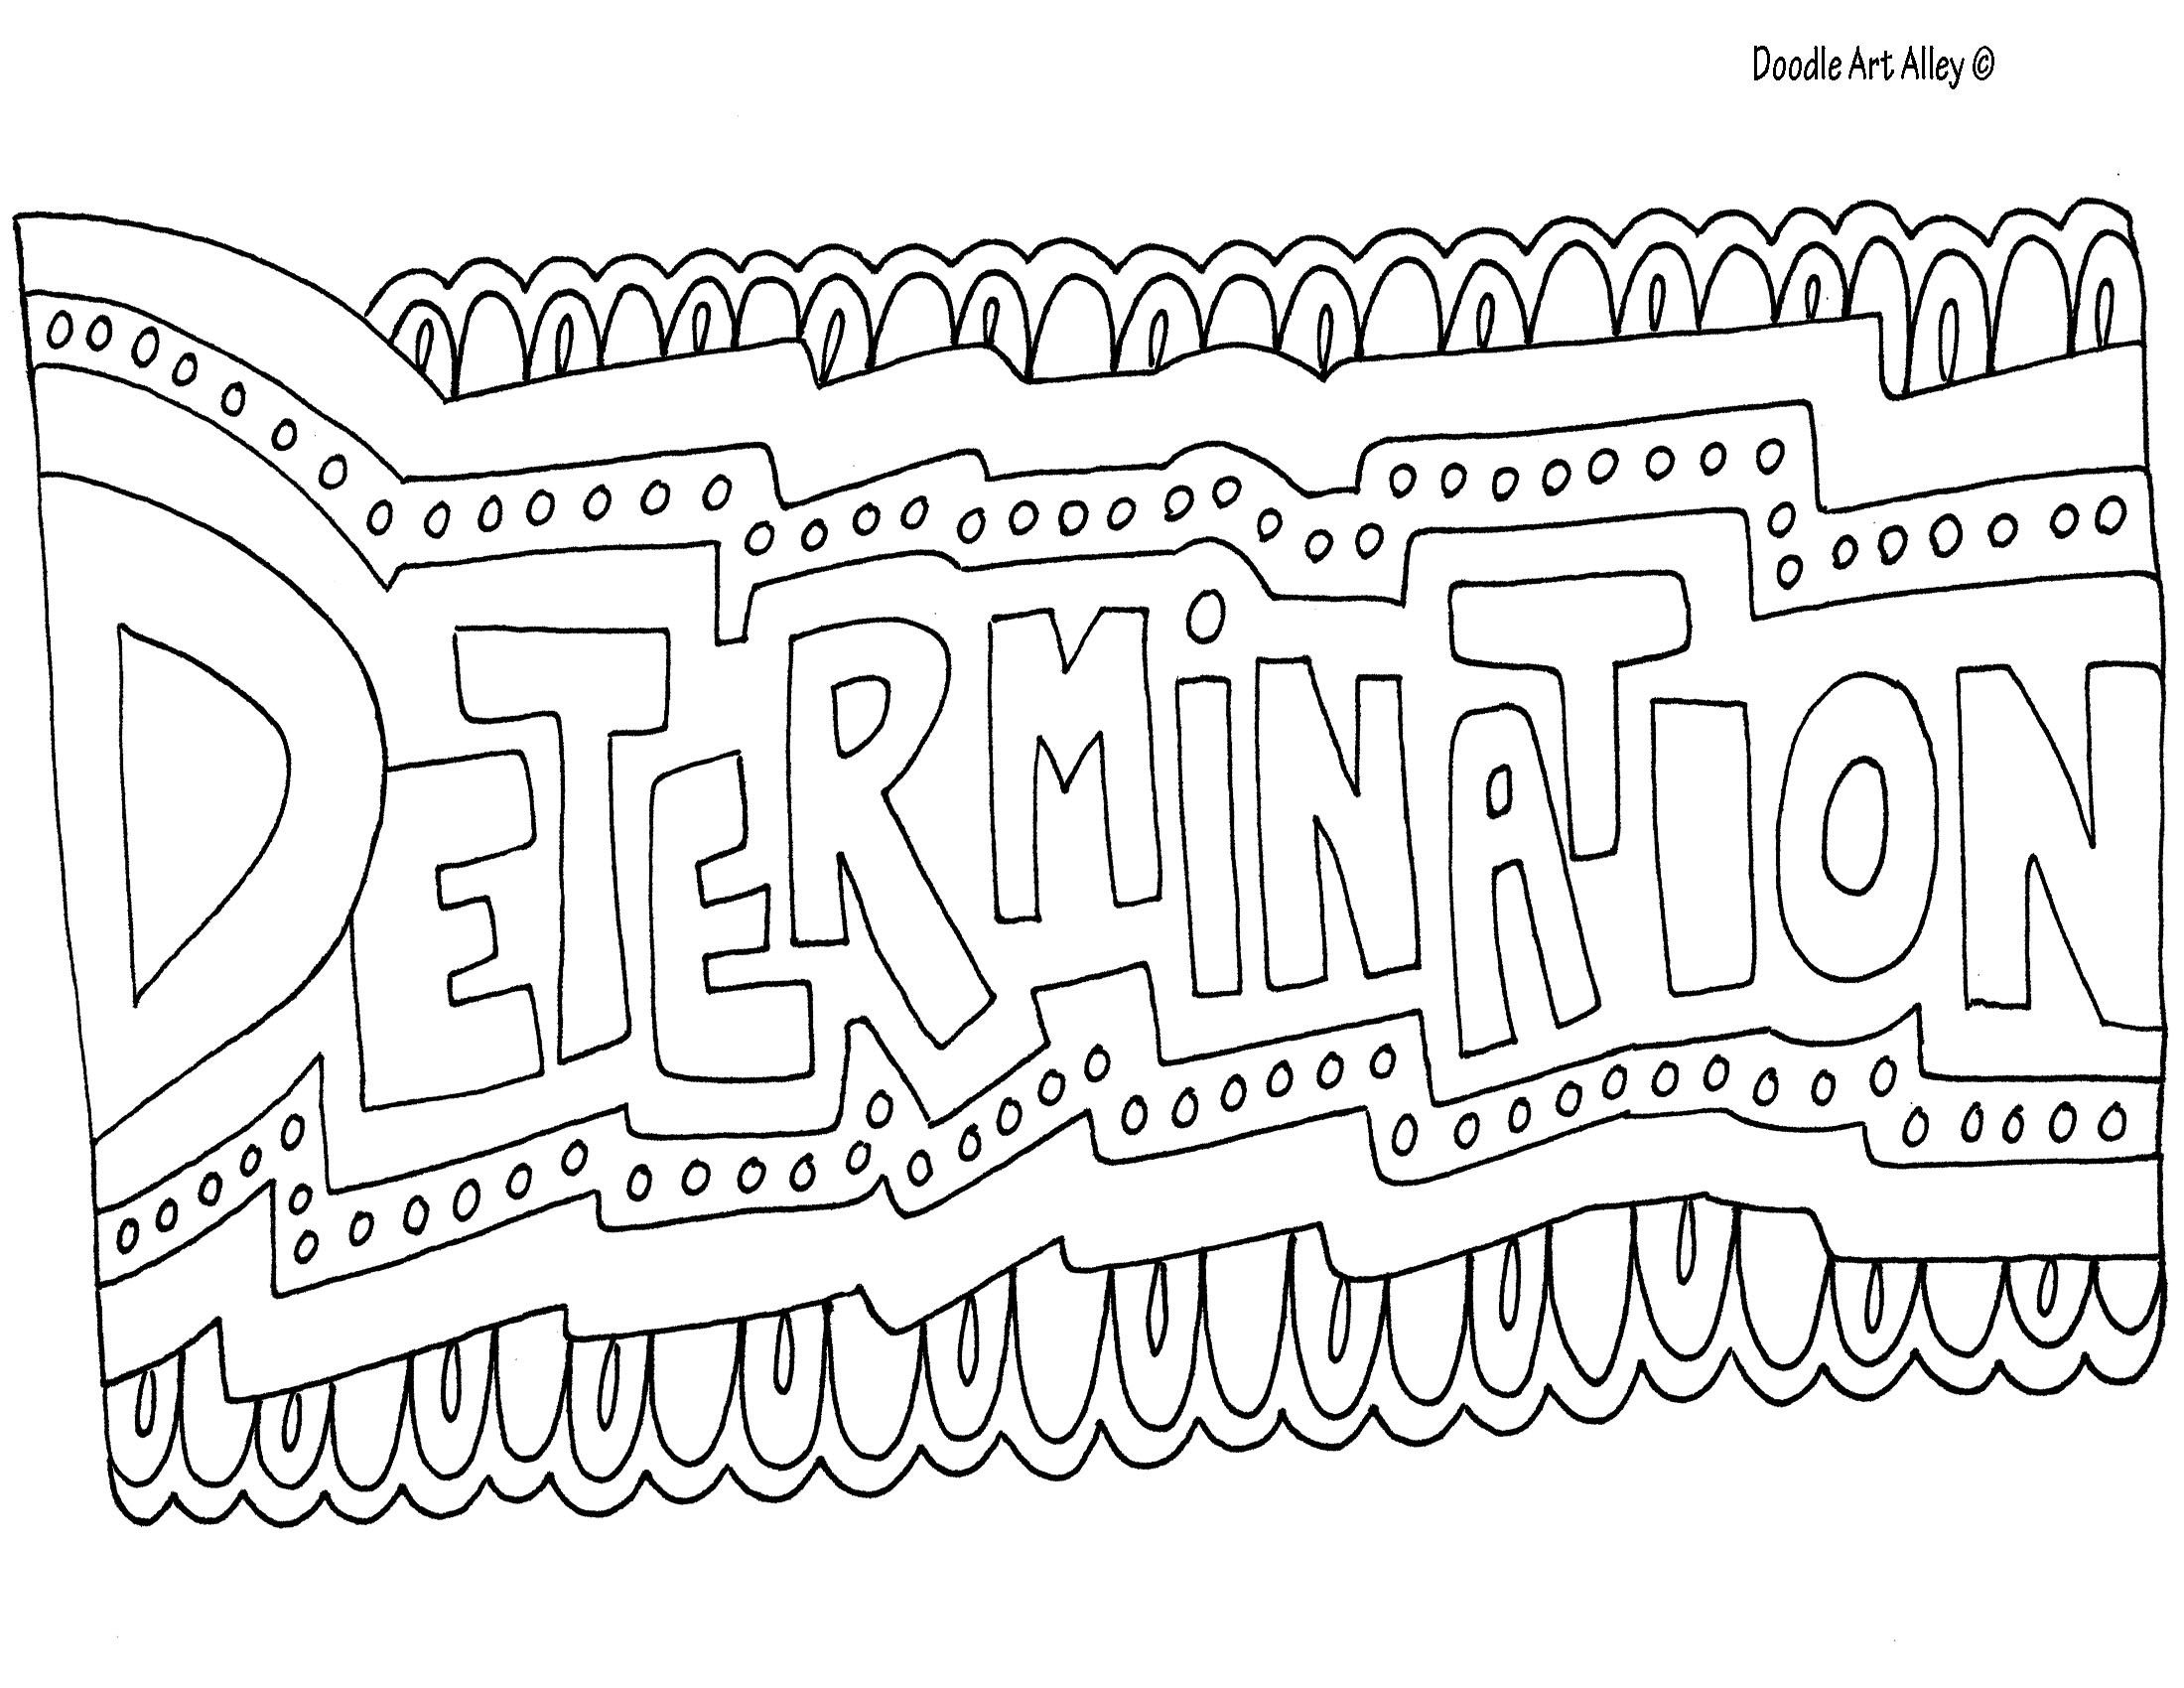 Determination Coloring Page